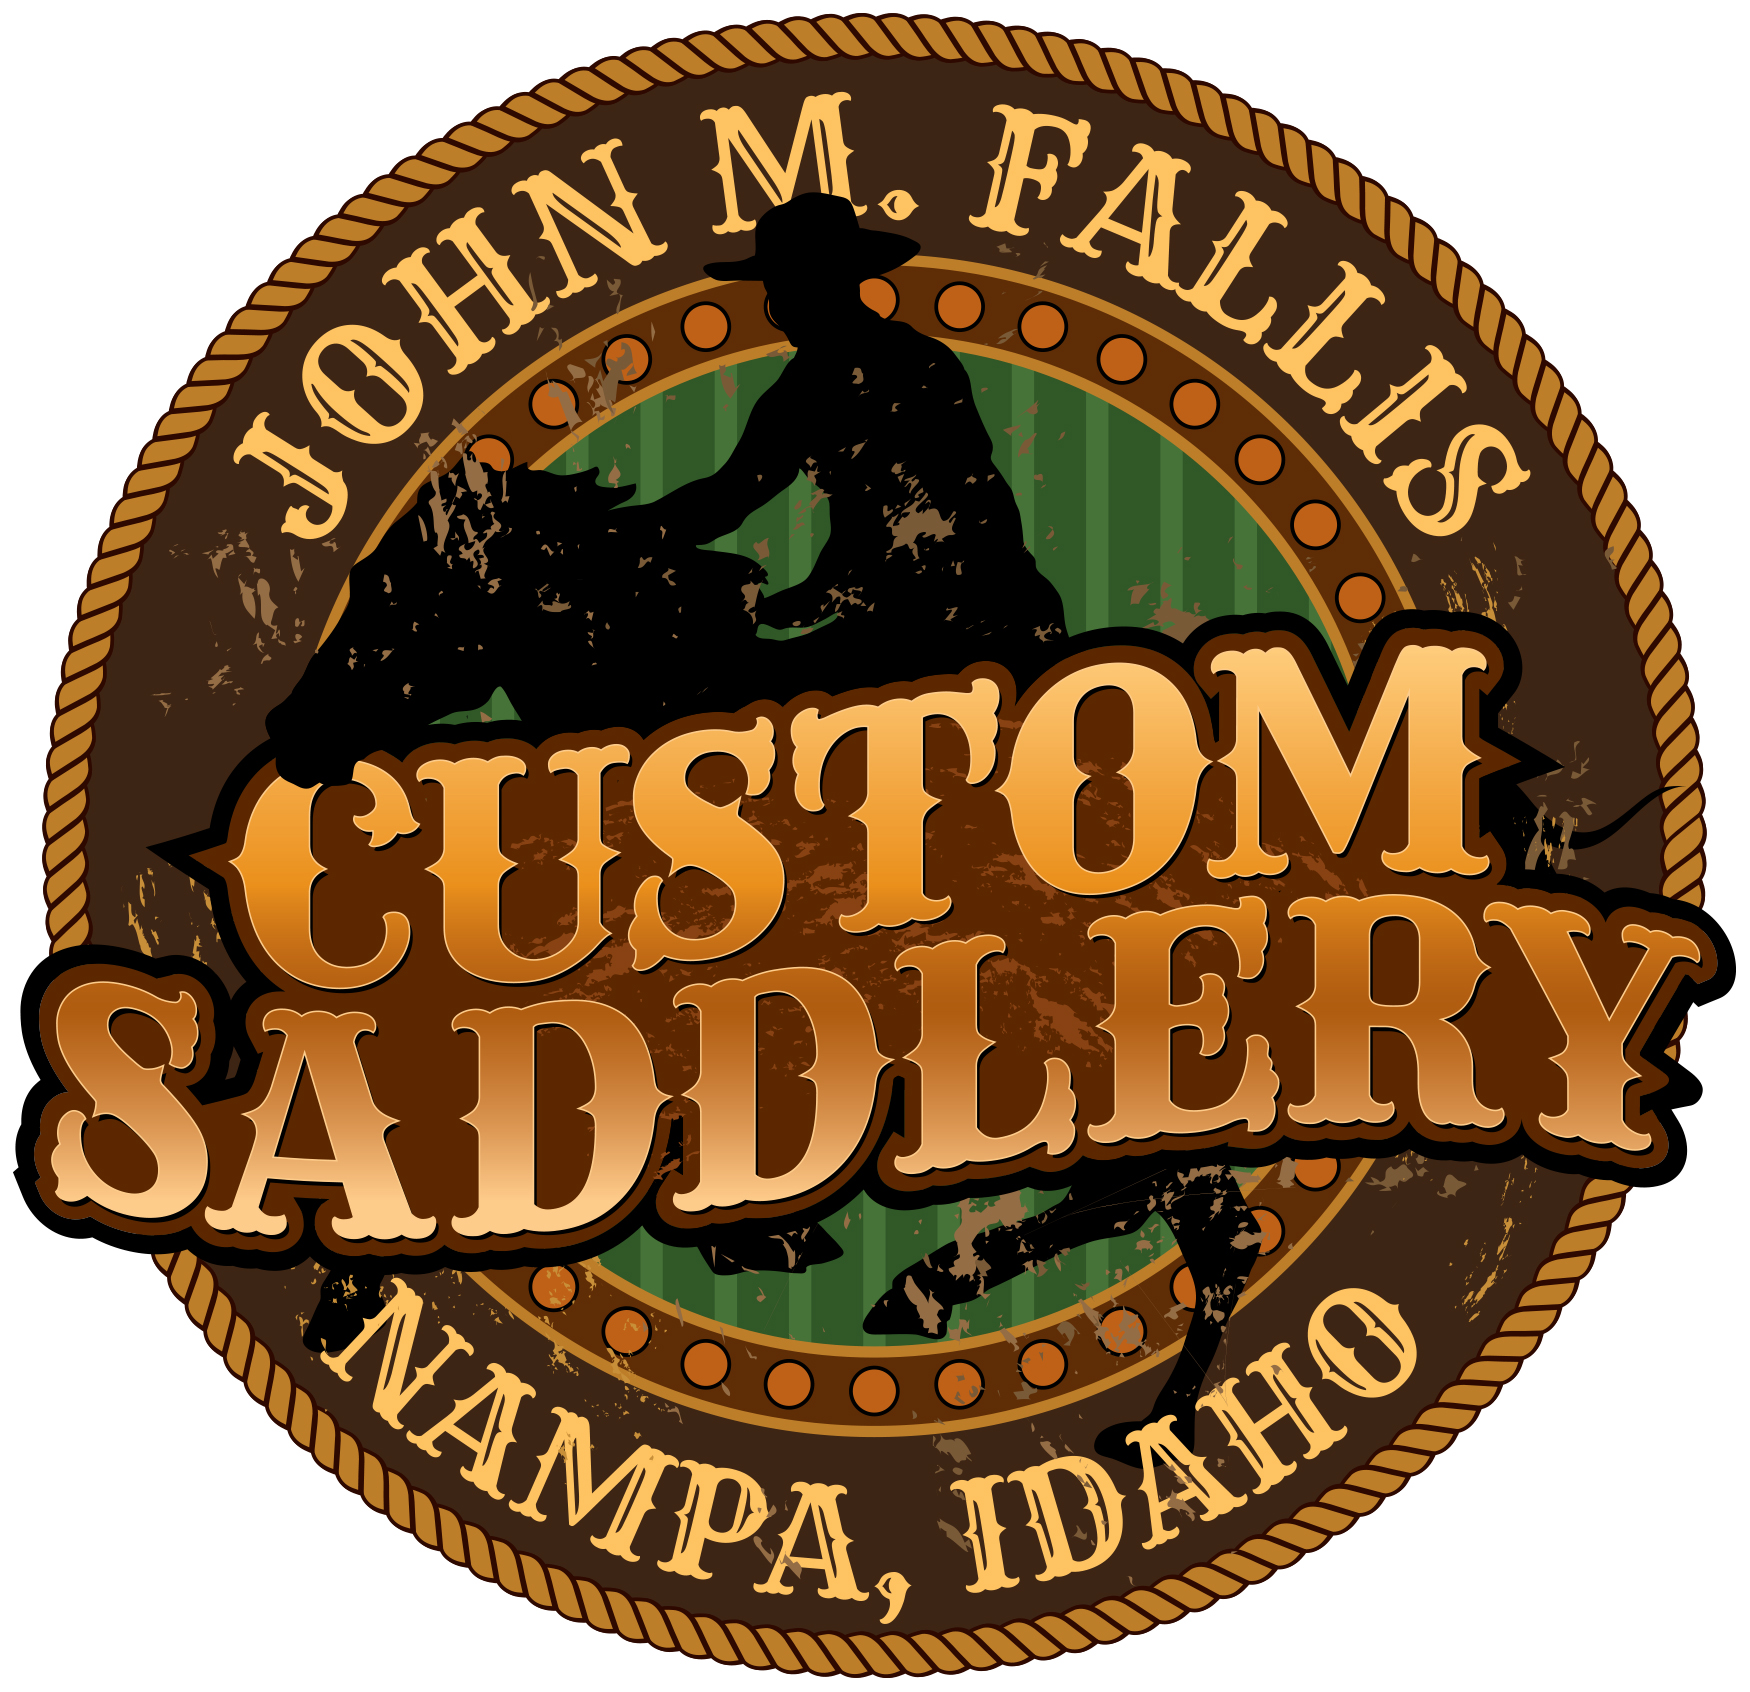 Custom Saddlery